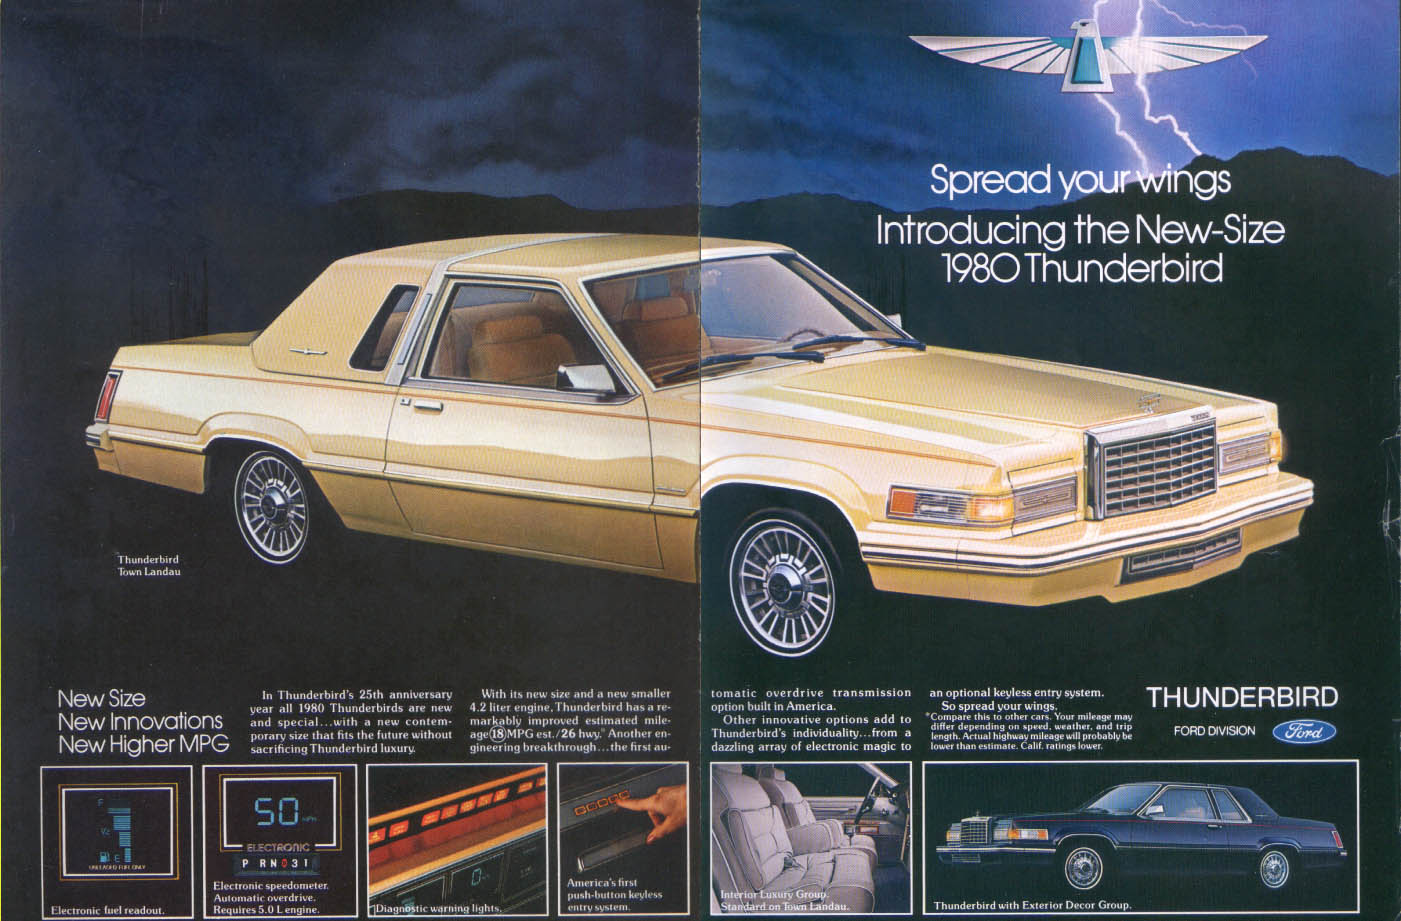 Image for Ford Thunderbird Town Landau Spread your wings ad 1980